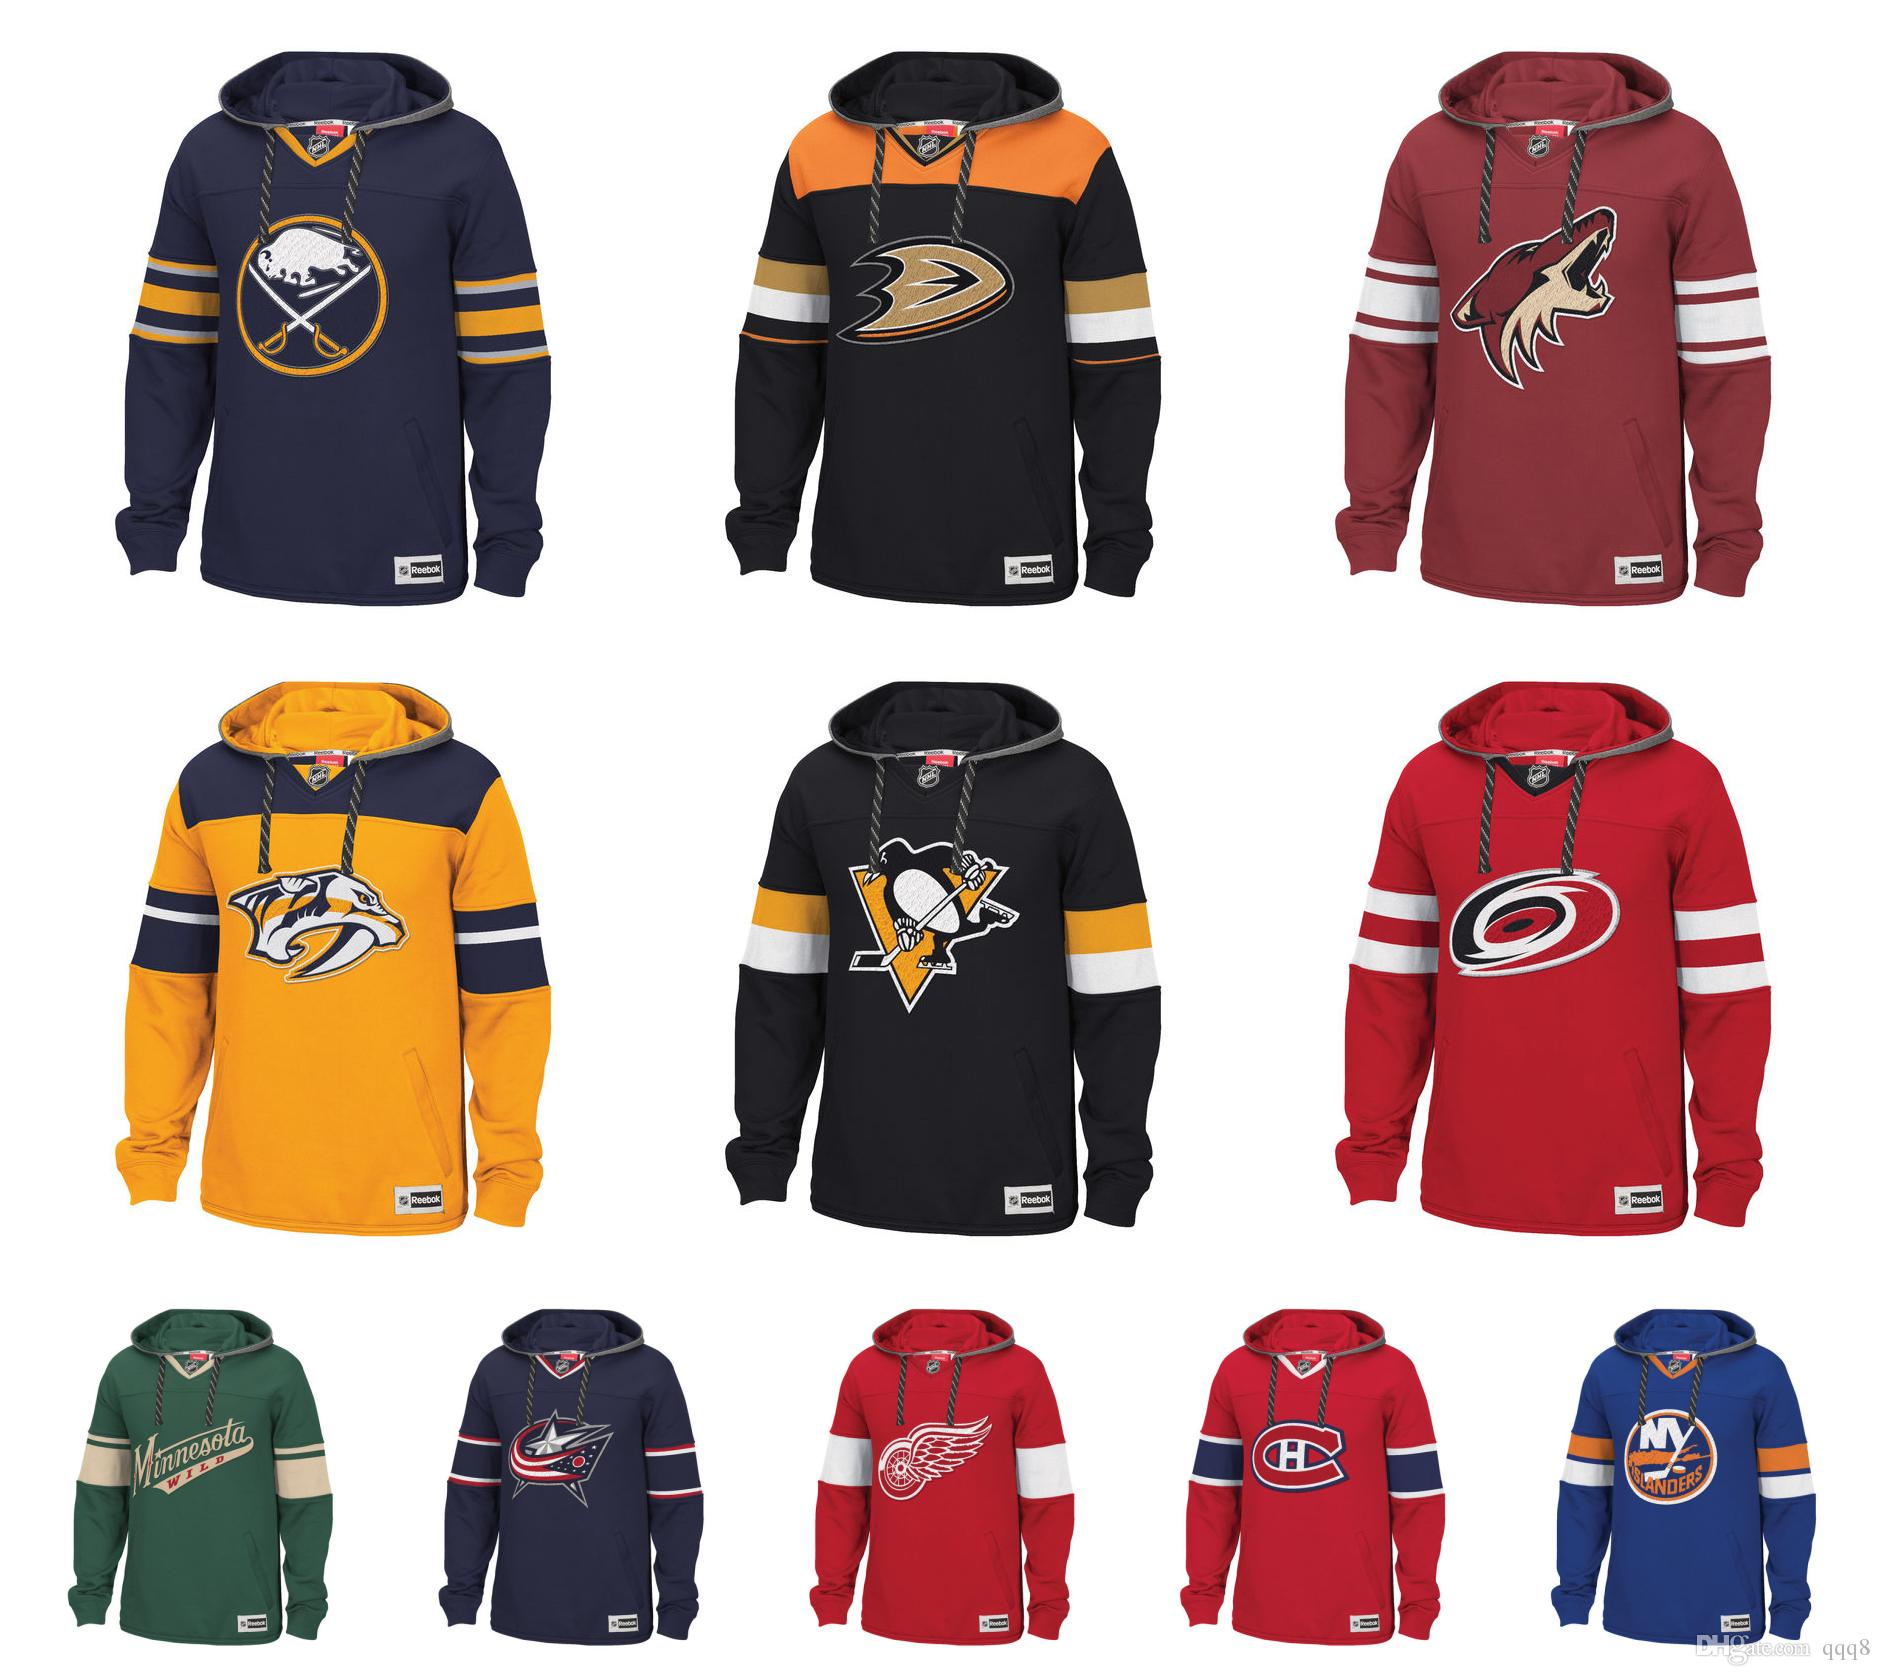 2019 Custom NHL Hockey Hoodie Pullover Nashville Predators Detroit Red  Wings Montreal Canadiens San Jose Sharks Pittsburgh Penguins Sabres From  Qqq8 3bf0c6c15